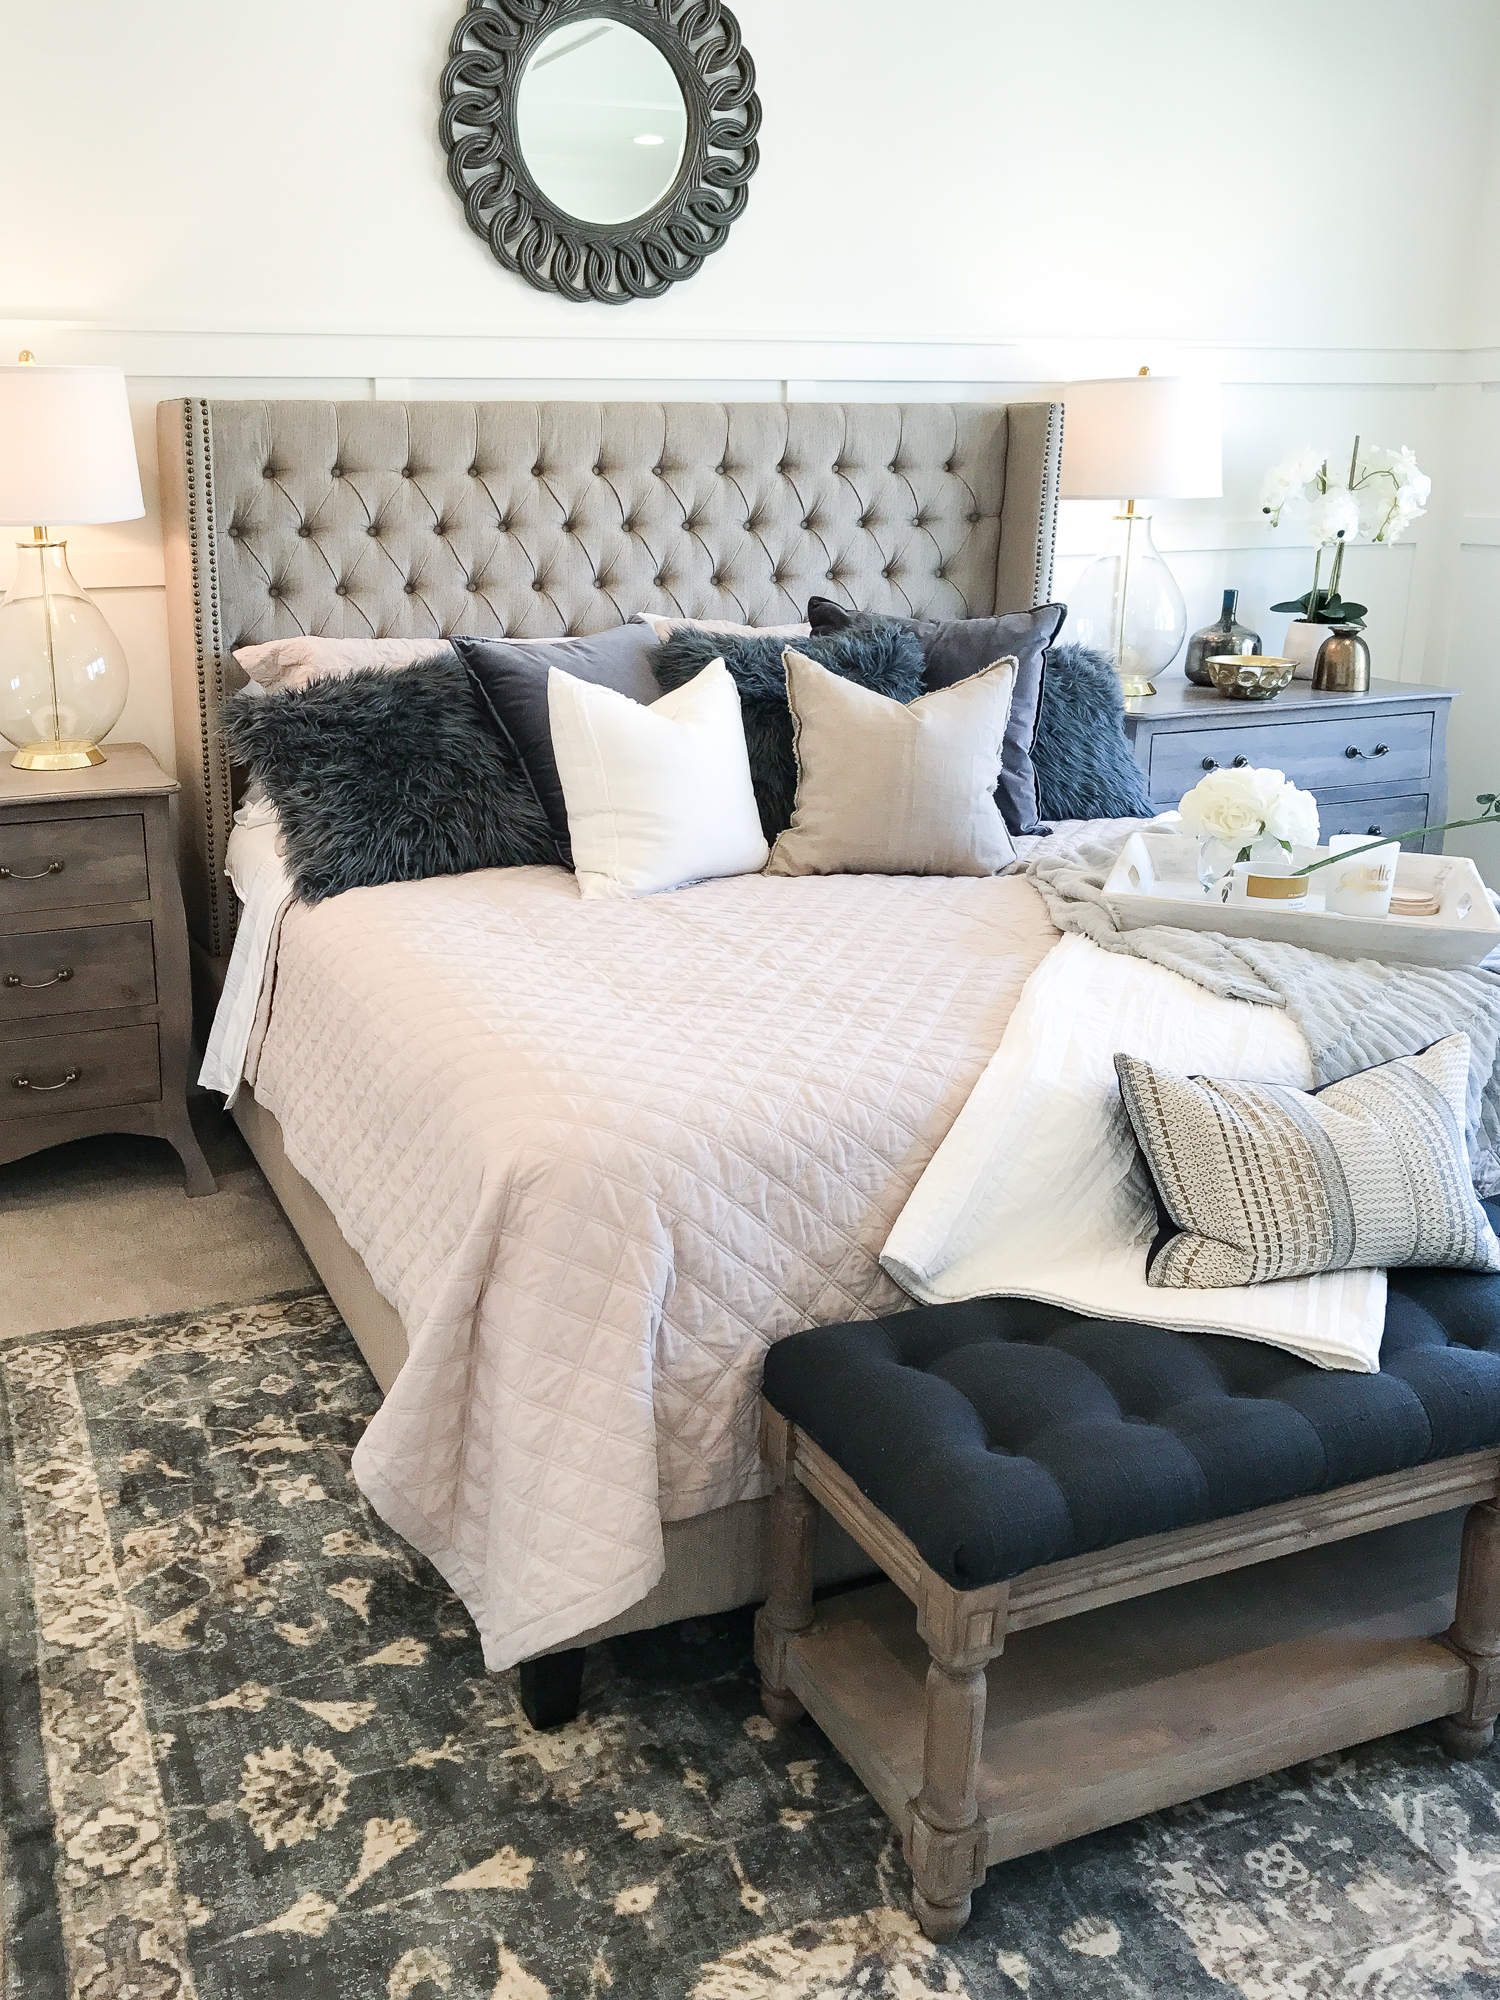 Cozy Luxe Bedroom with tufted headboard, white walls and shiplap ceiling.